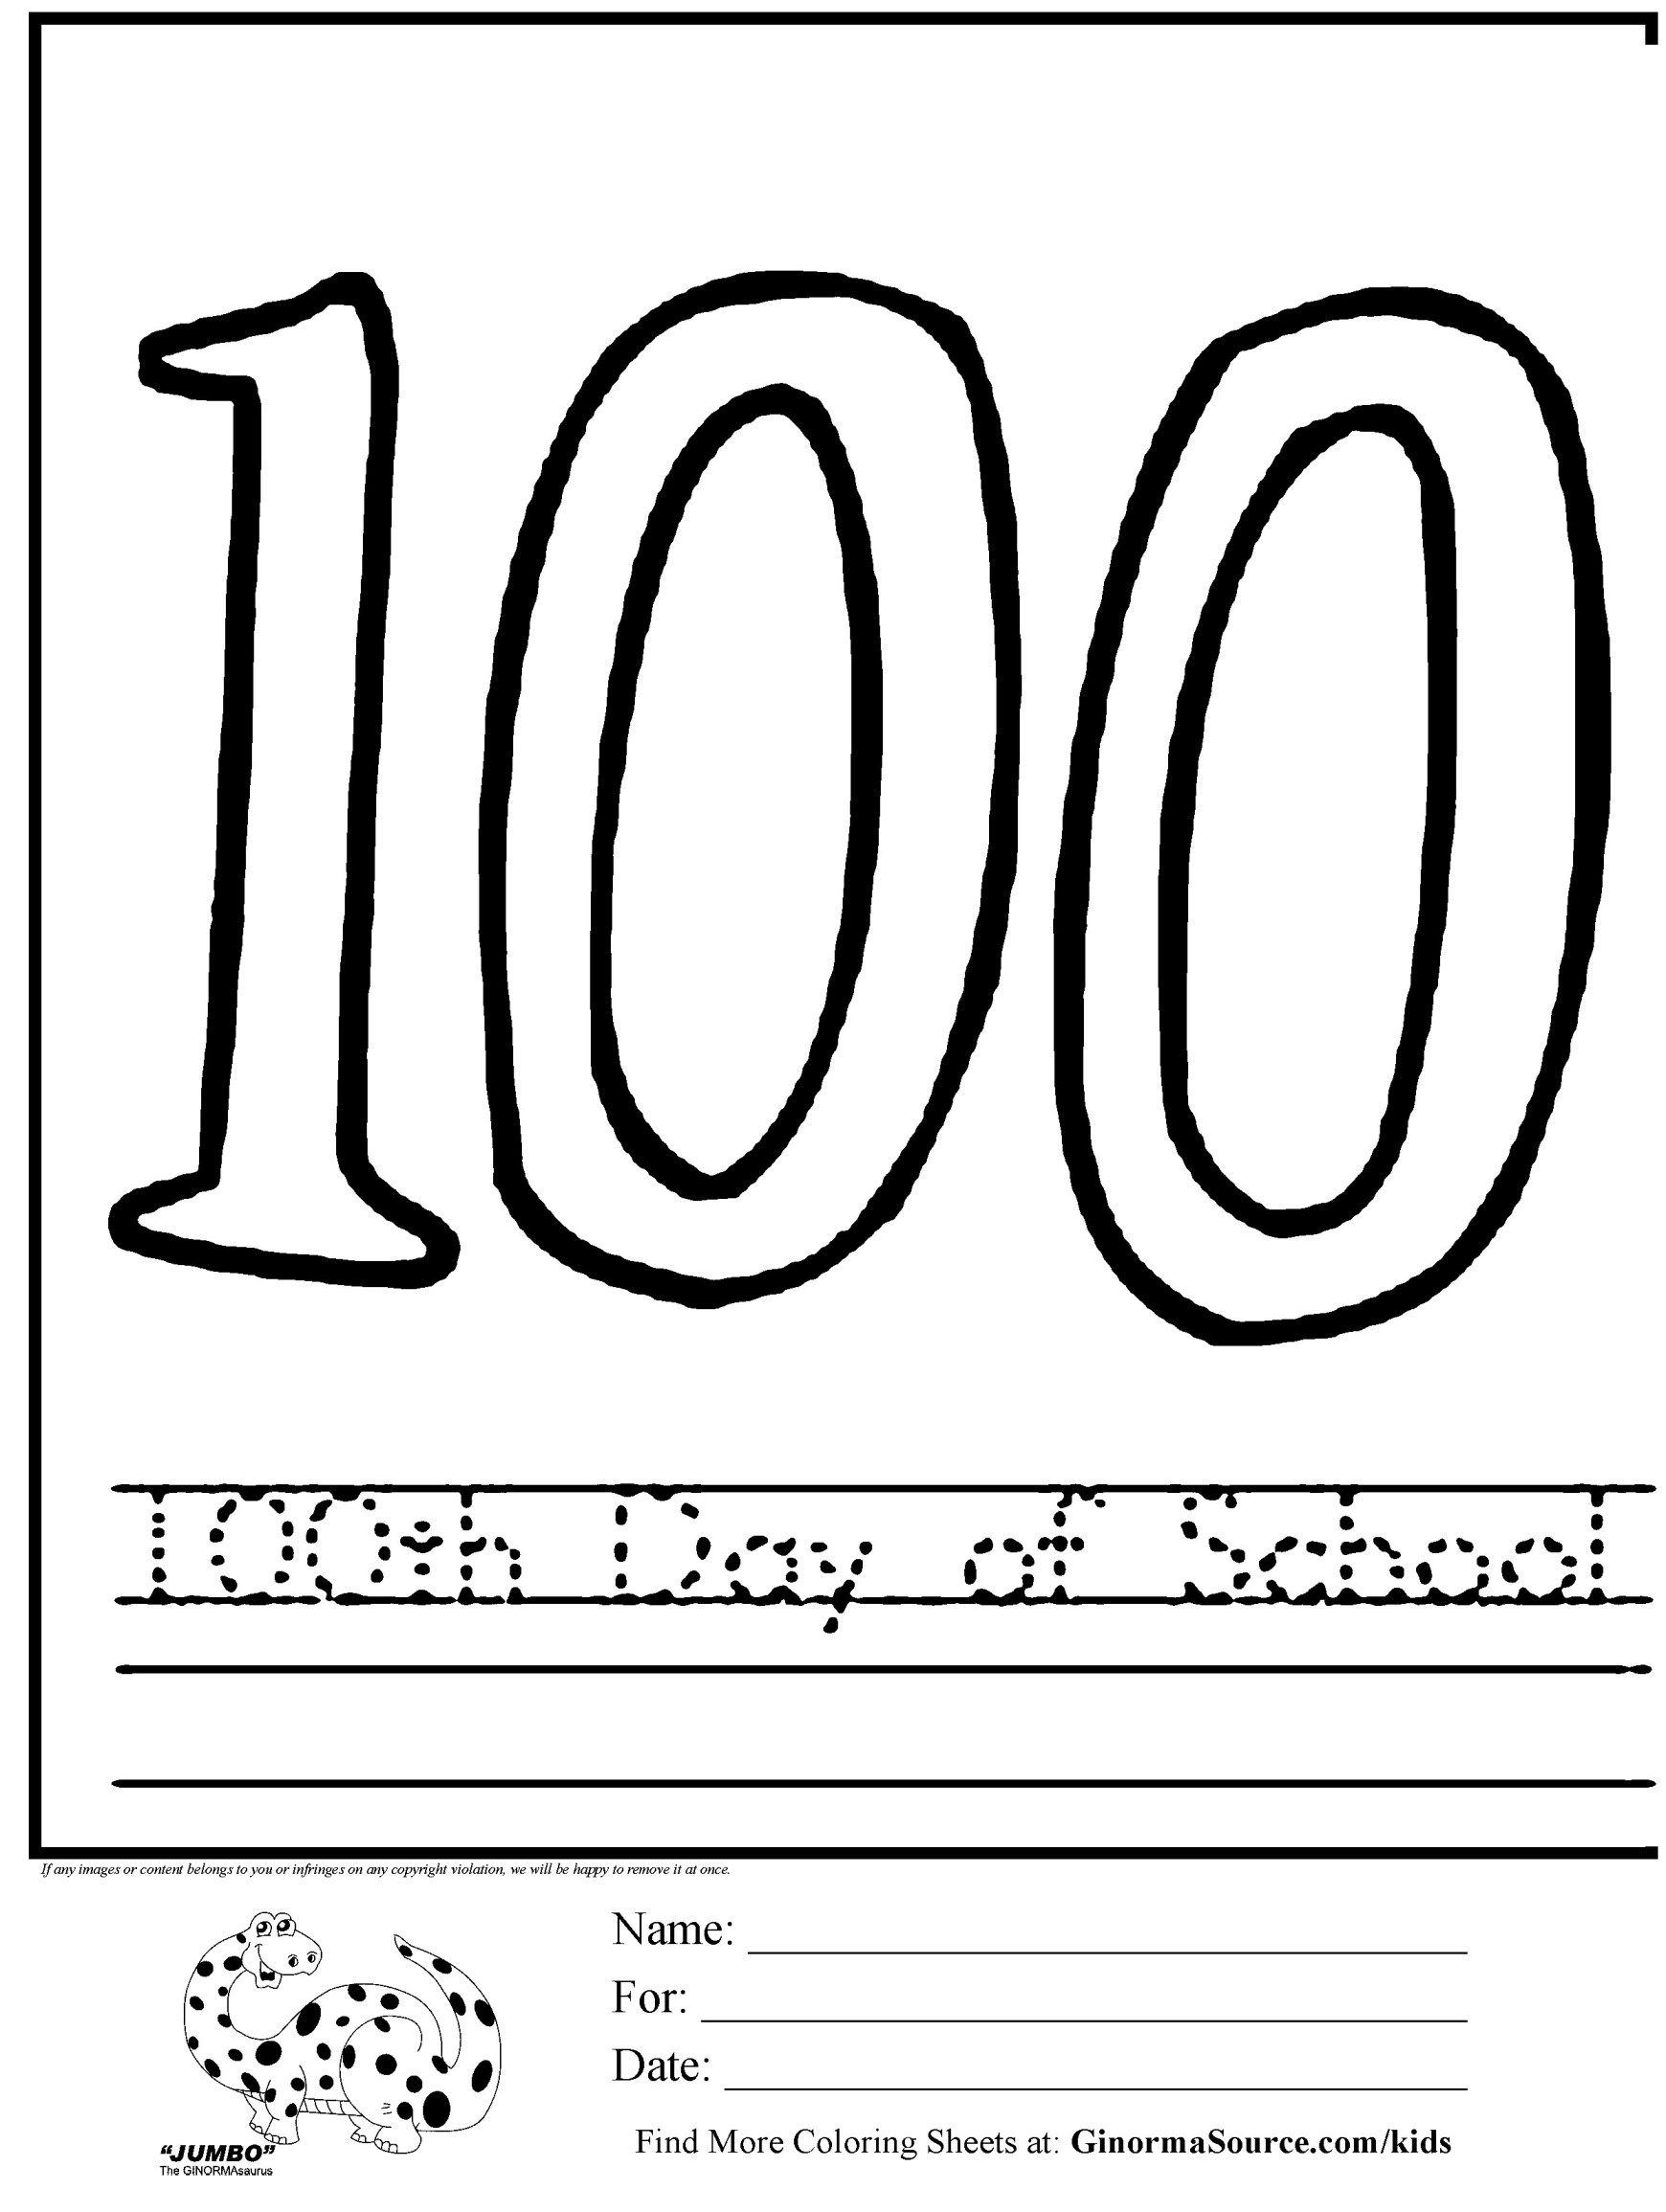 Exclusive Photo Of 100th Day Of School Coloring Pages